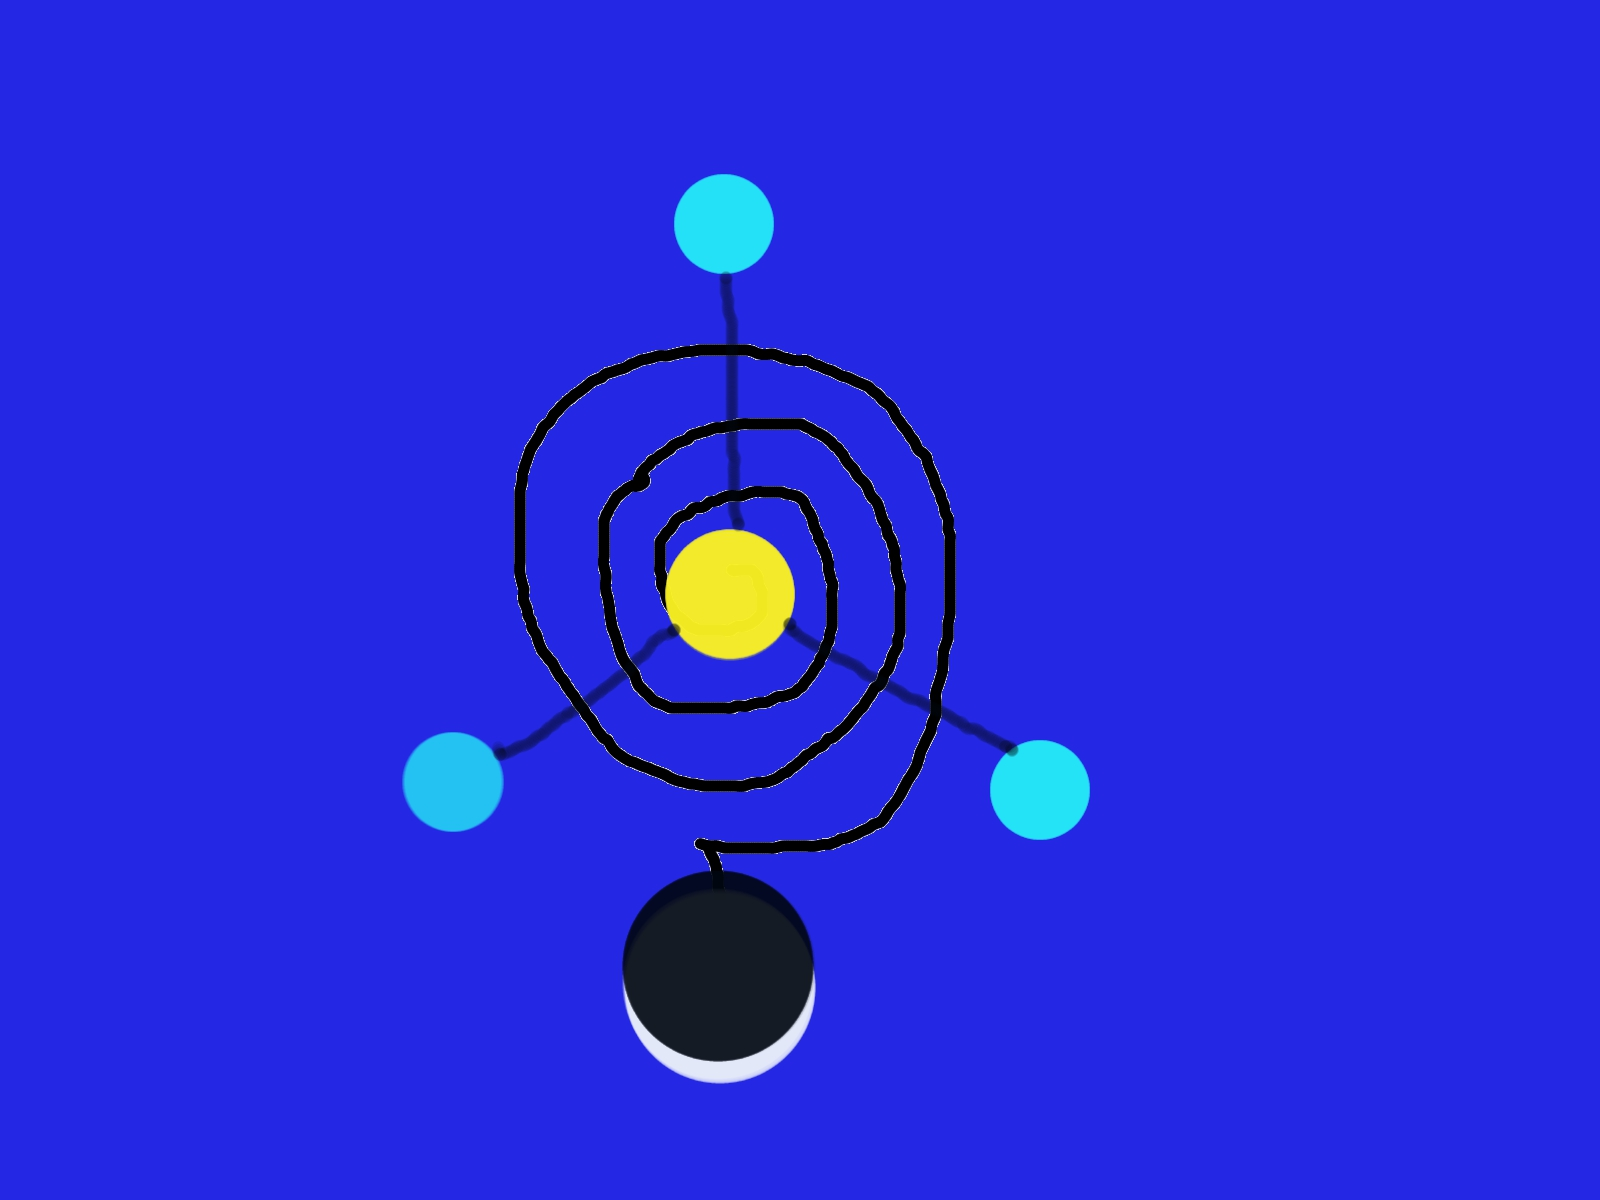 Tanran reiki this symbol is simpler than the more visionary dream time drawings of how the symbols are usually perceived in dream or vision space biocorpaavc